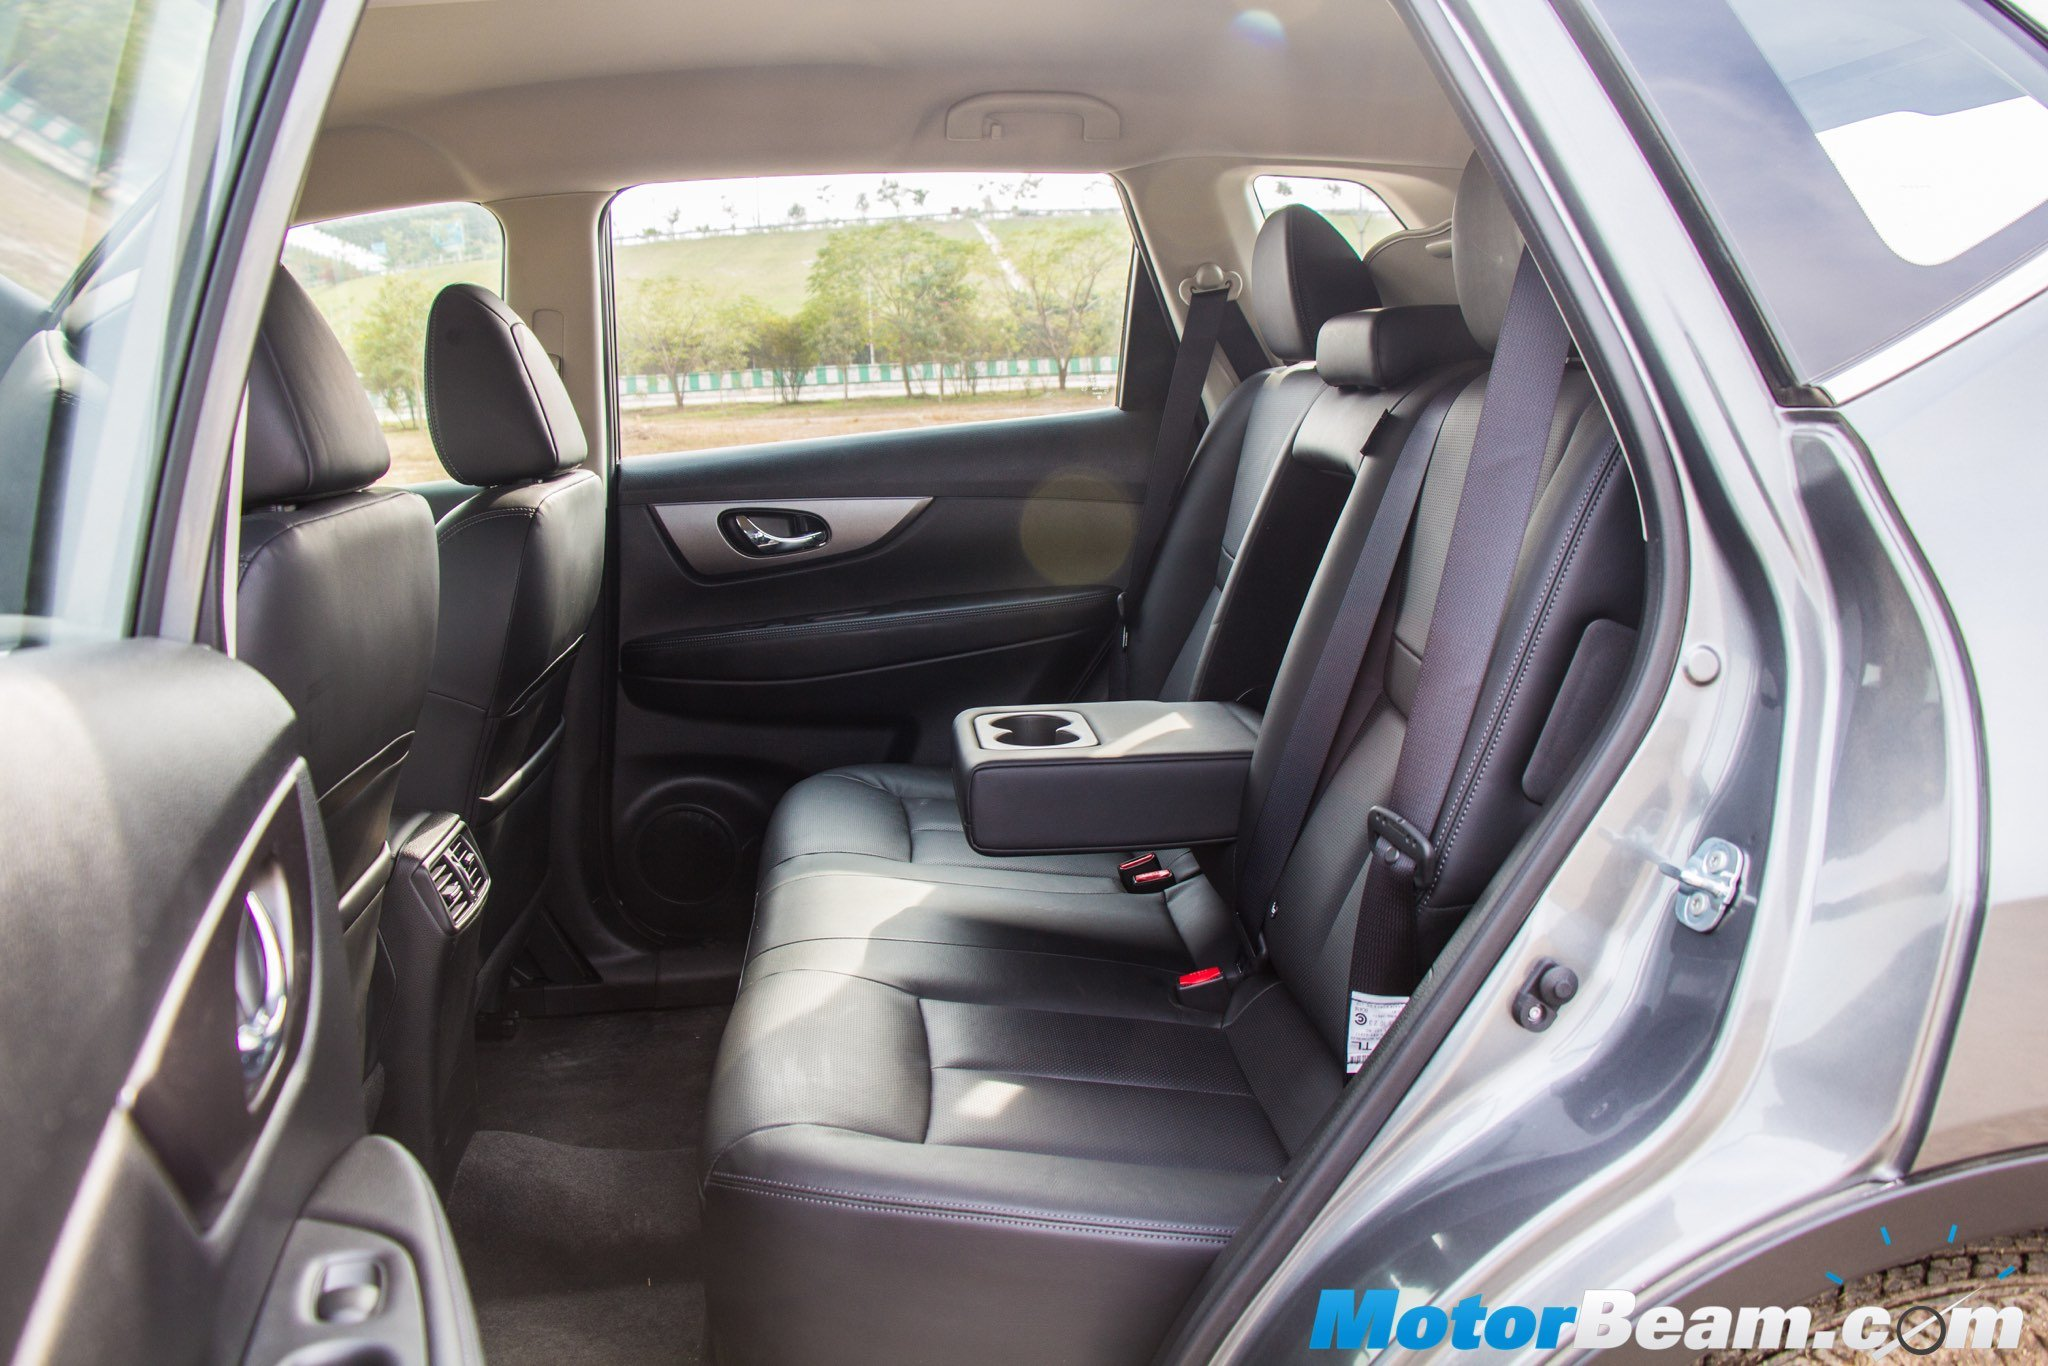 2016 Nissan X-Trail Hybrid Legroom